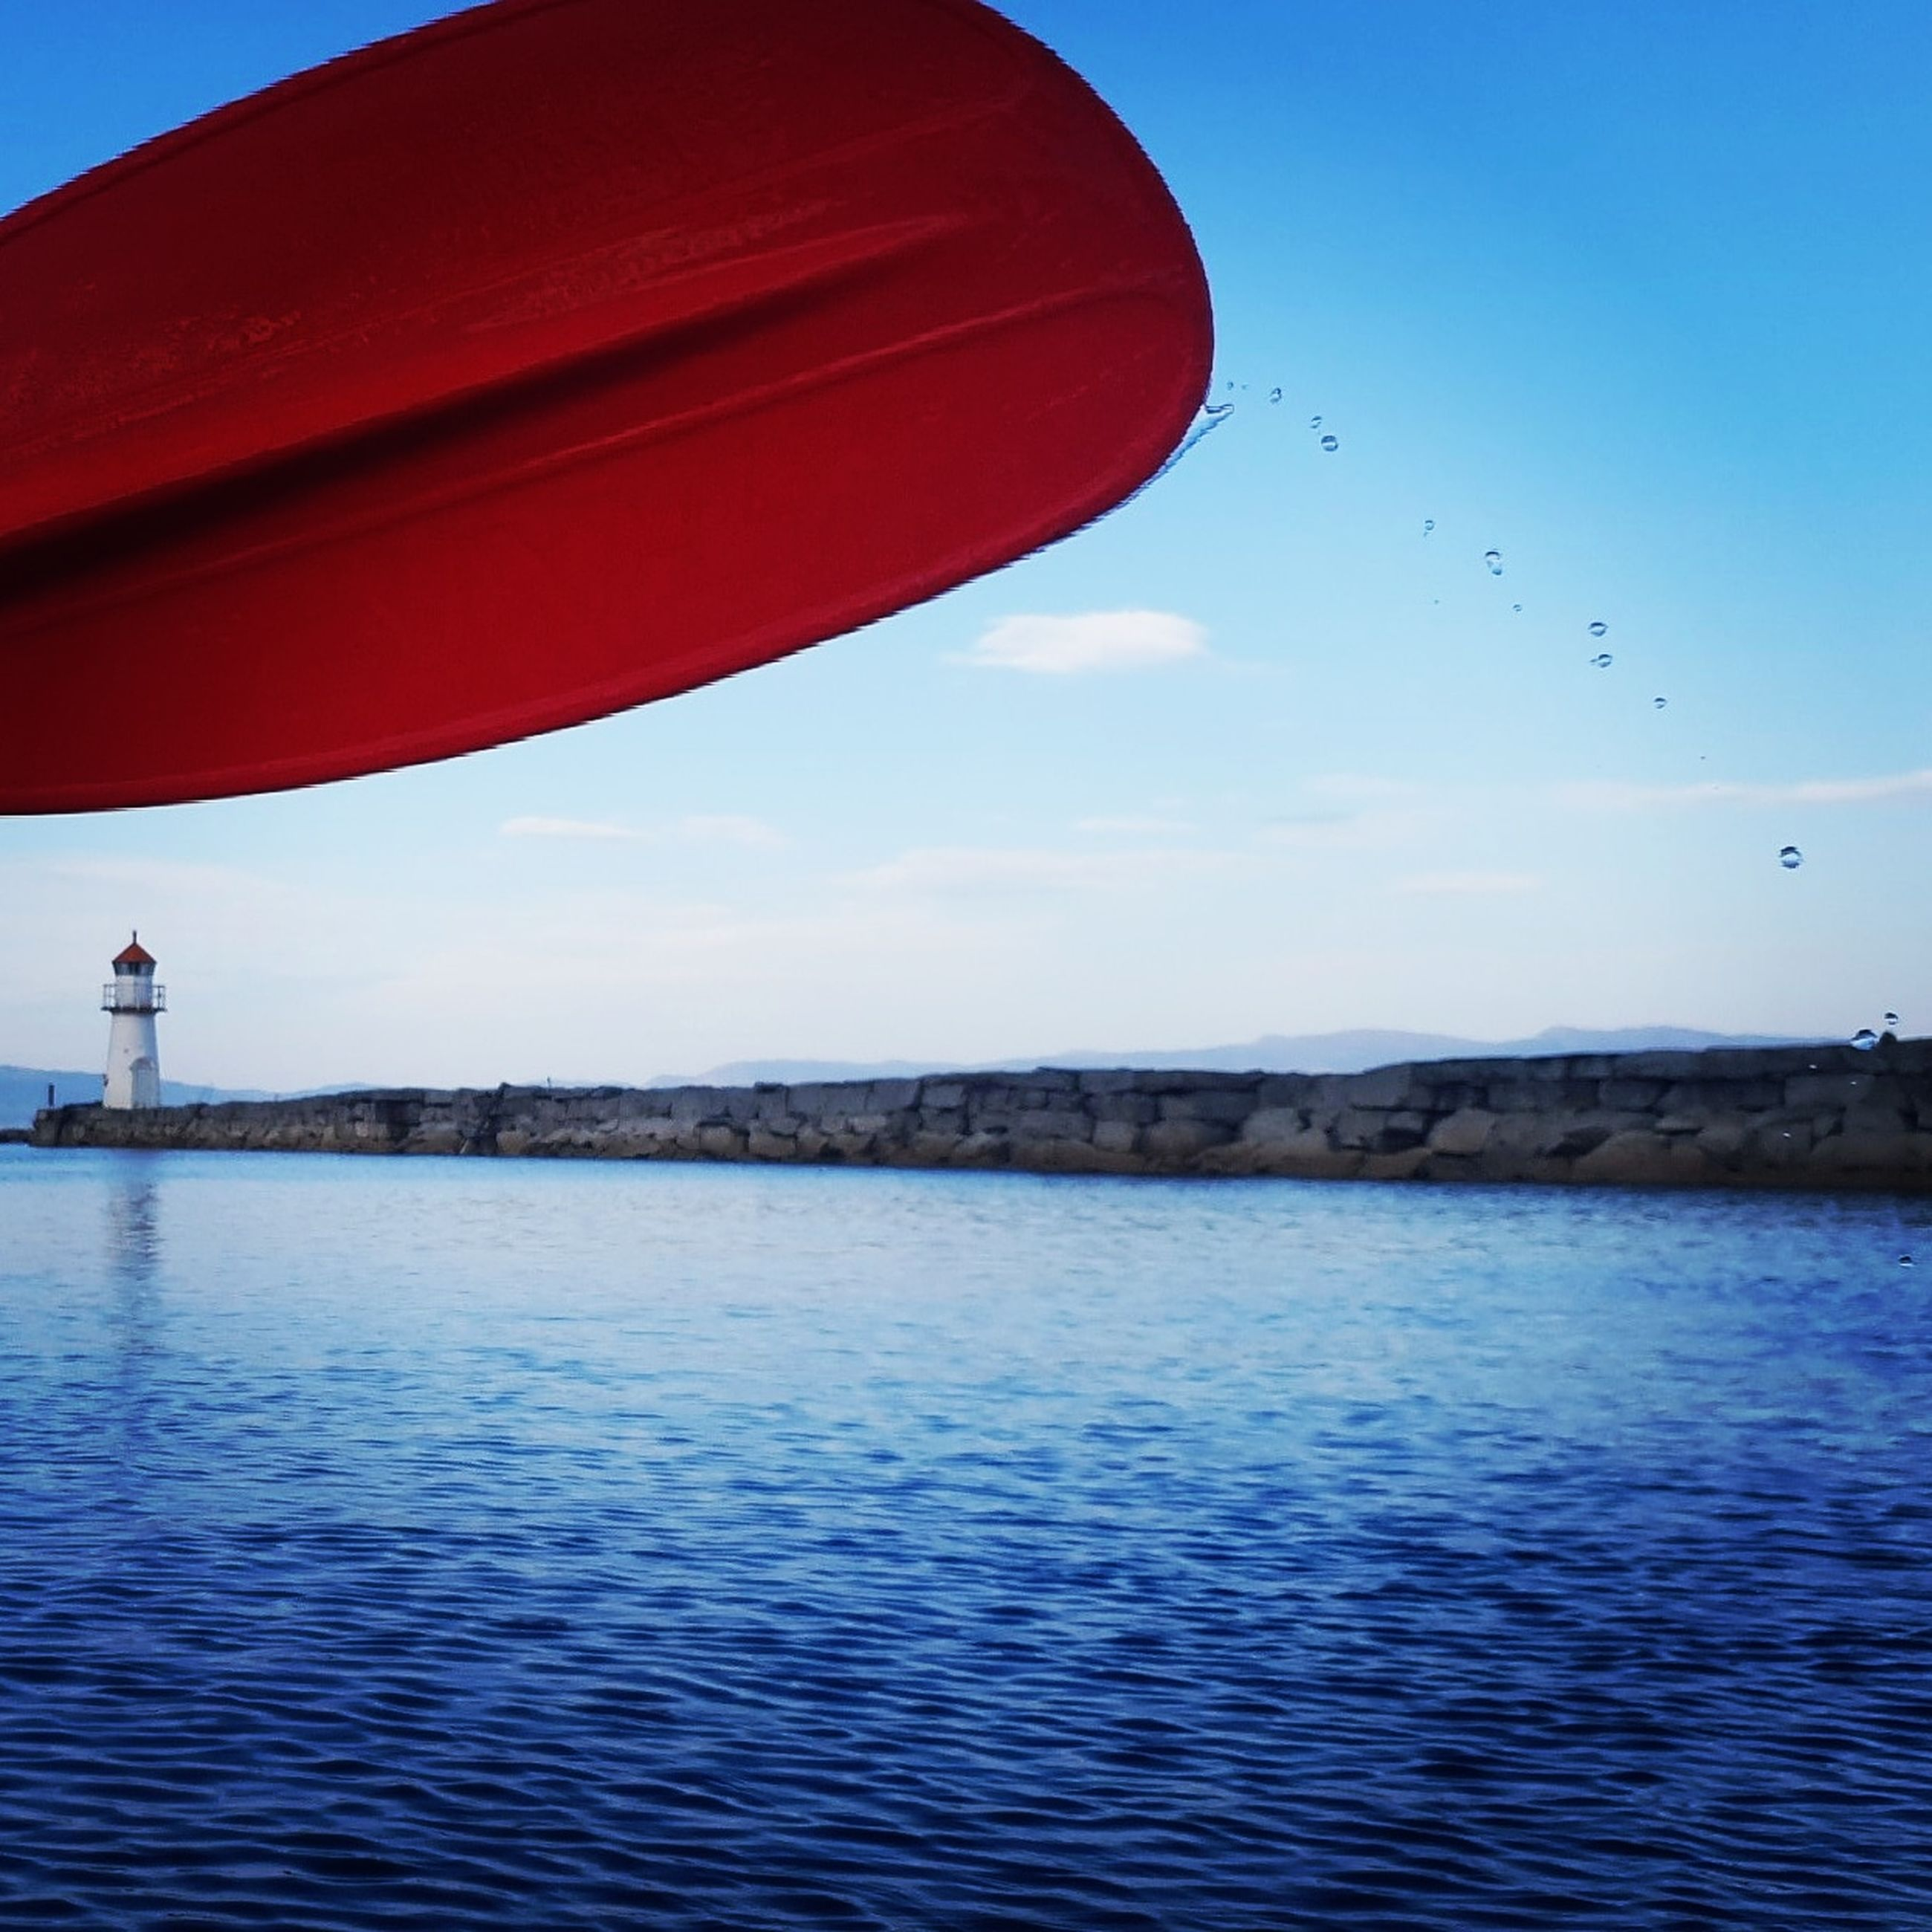 water, sky, waterfront, nature, sea, blue, flying, real people, day, scenics - nature, beauty in nature, one person, mid-air, leisure activity, outdoors, lifestyles, red, rippled